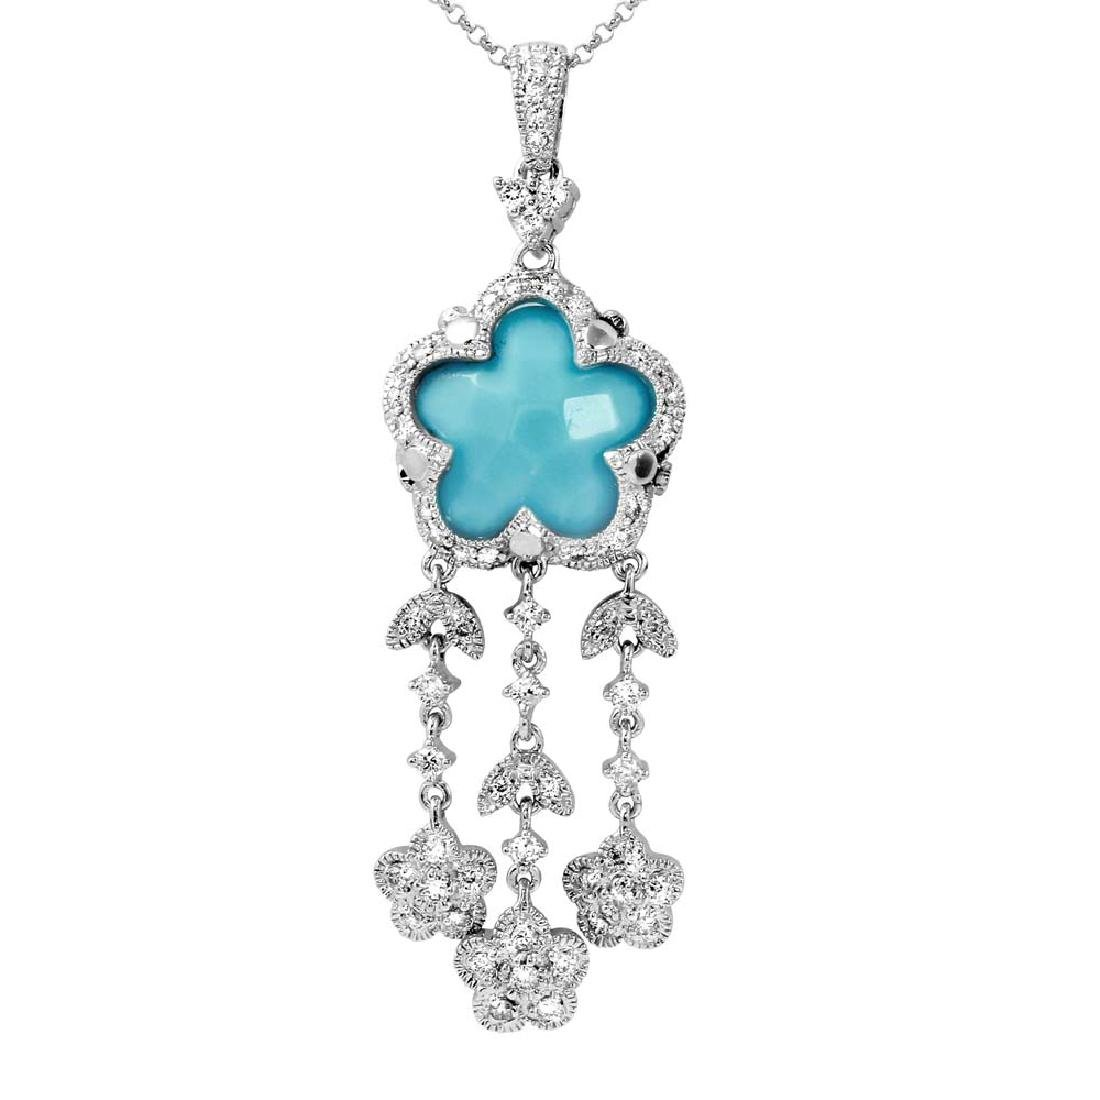 14KT White Gold 4.55ct Turquoise and Diamond Pendant